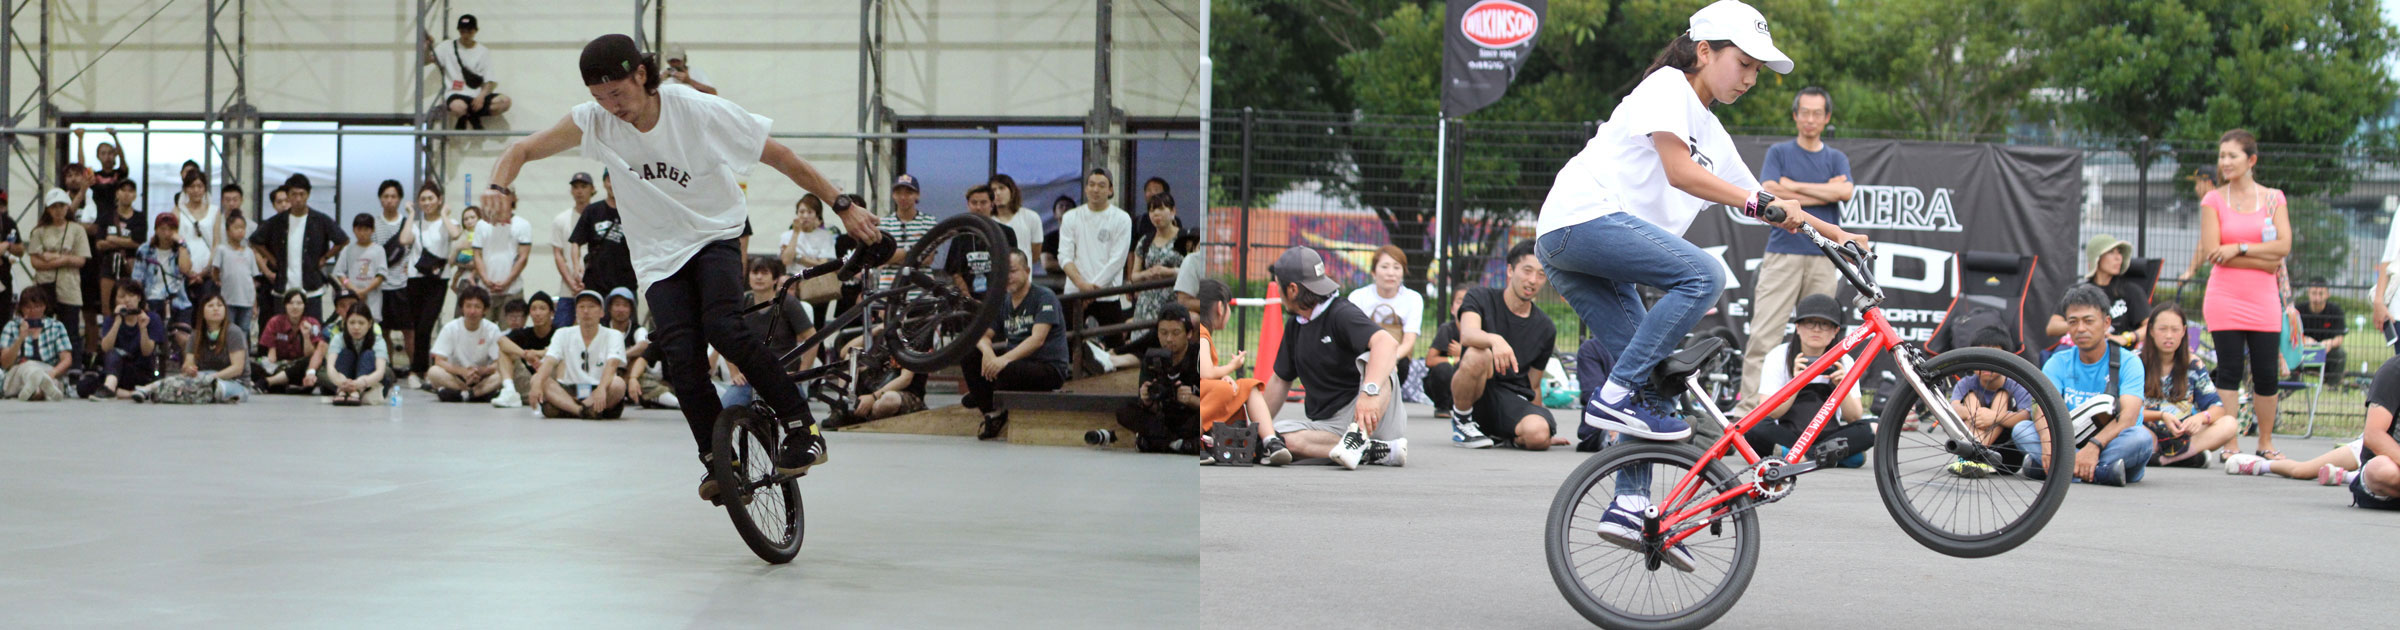 CHIMERA-A-SIDEの1stLEAGUE-2019のReport メイン画像:BMX-Flatland BMXフラットランド